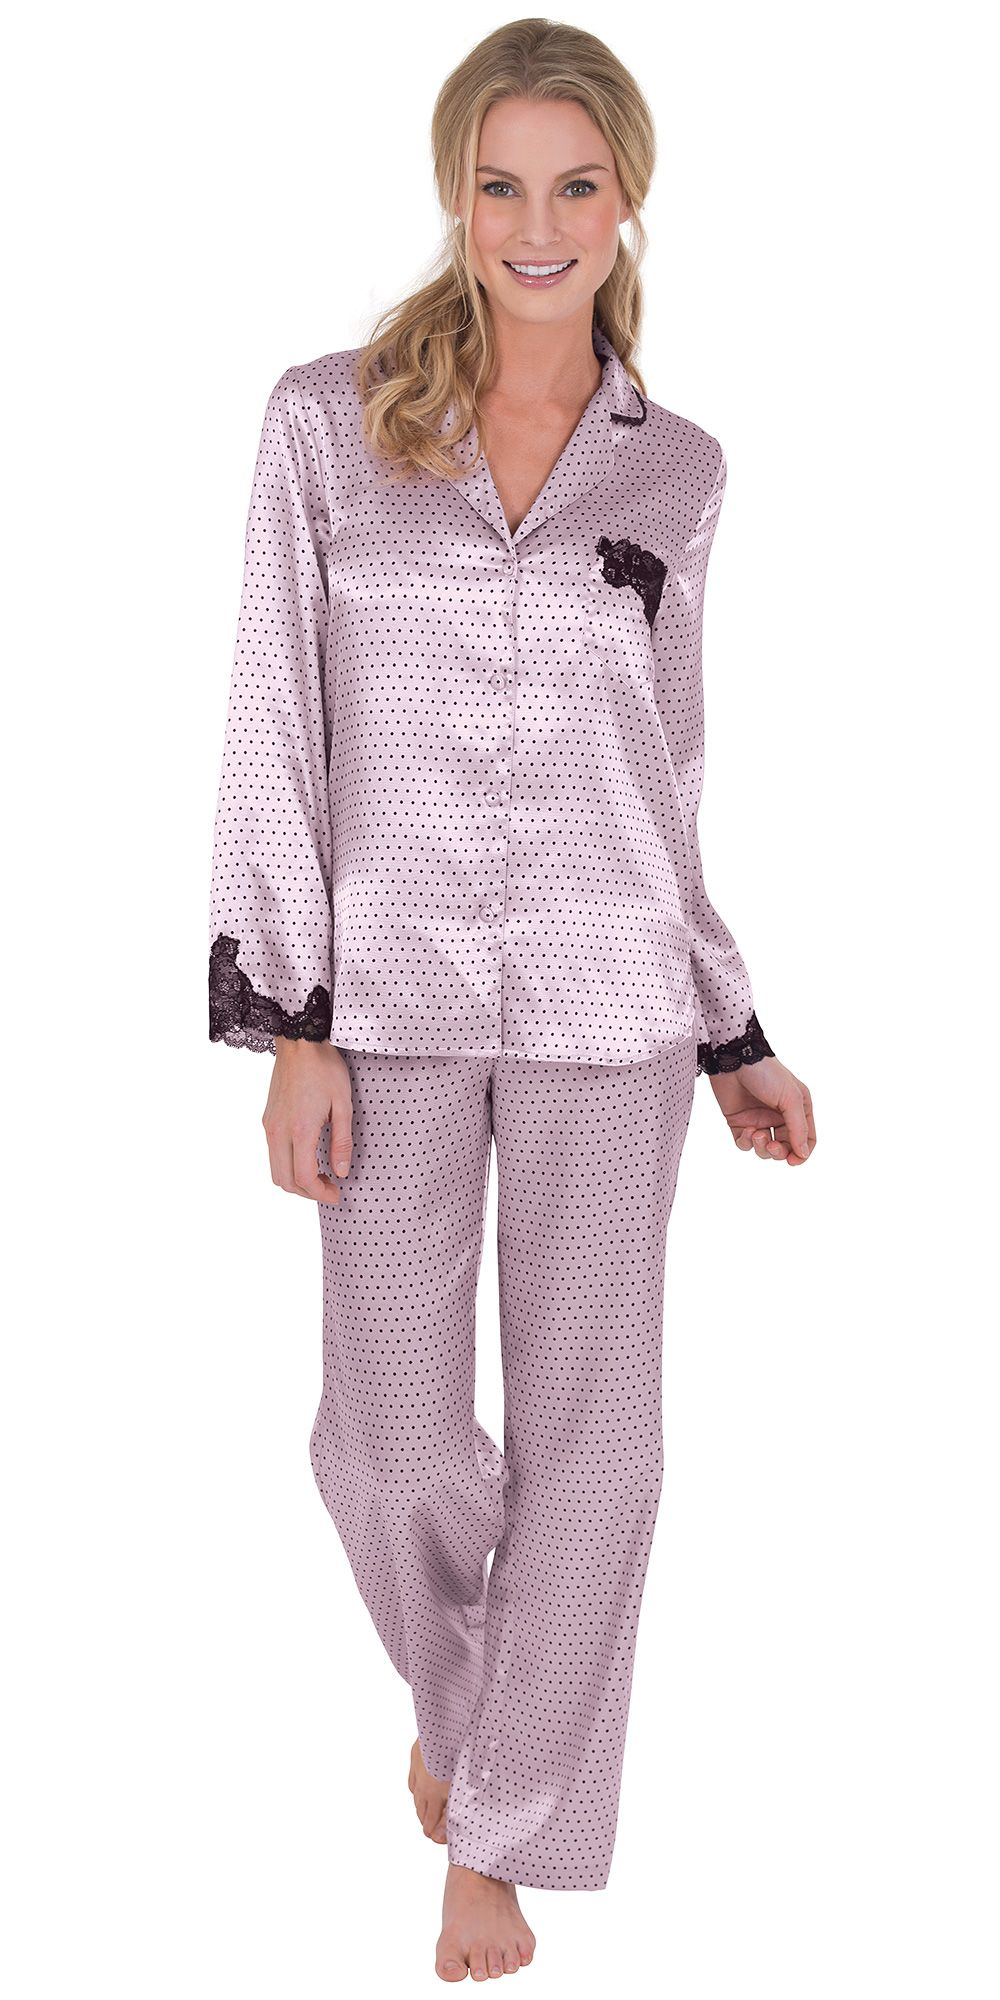 Satin Pajamas Pajamas for Women for Men Party Tumblr for Kids ...